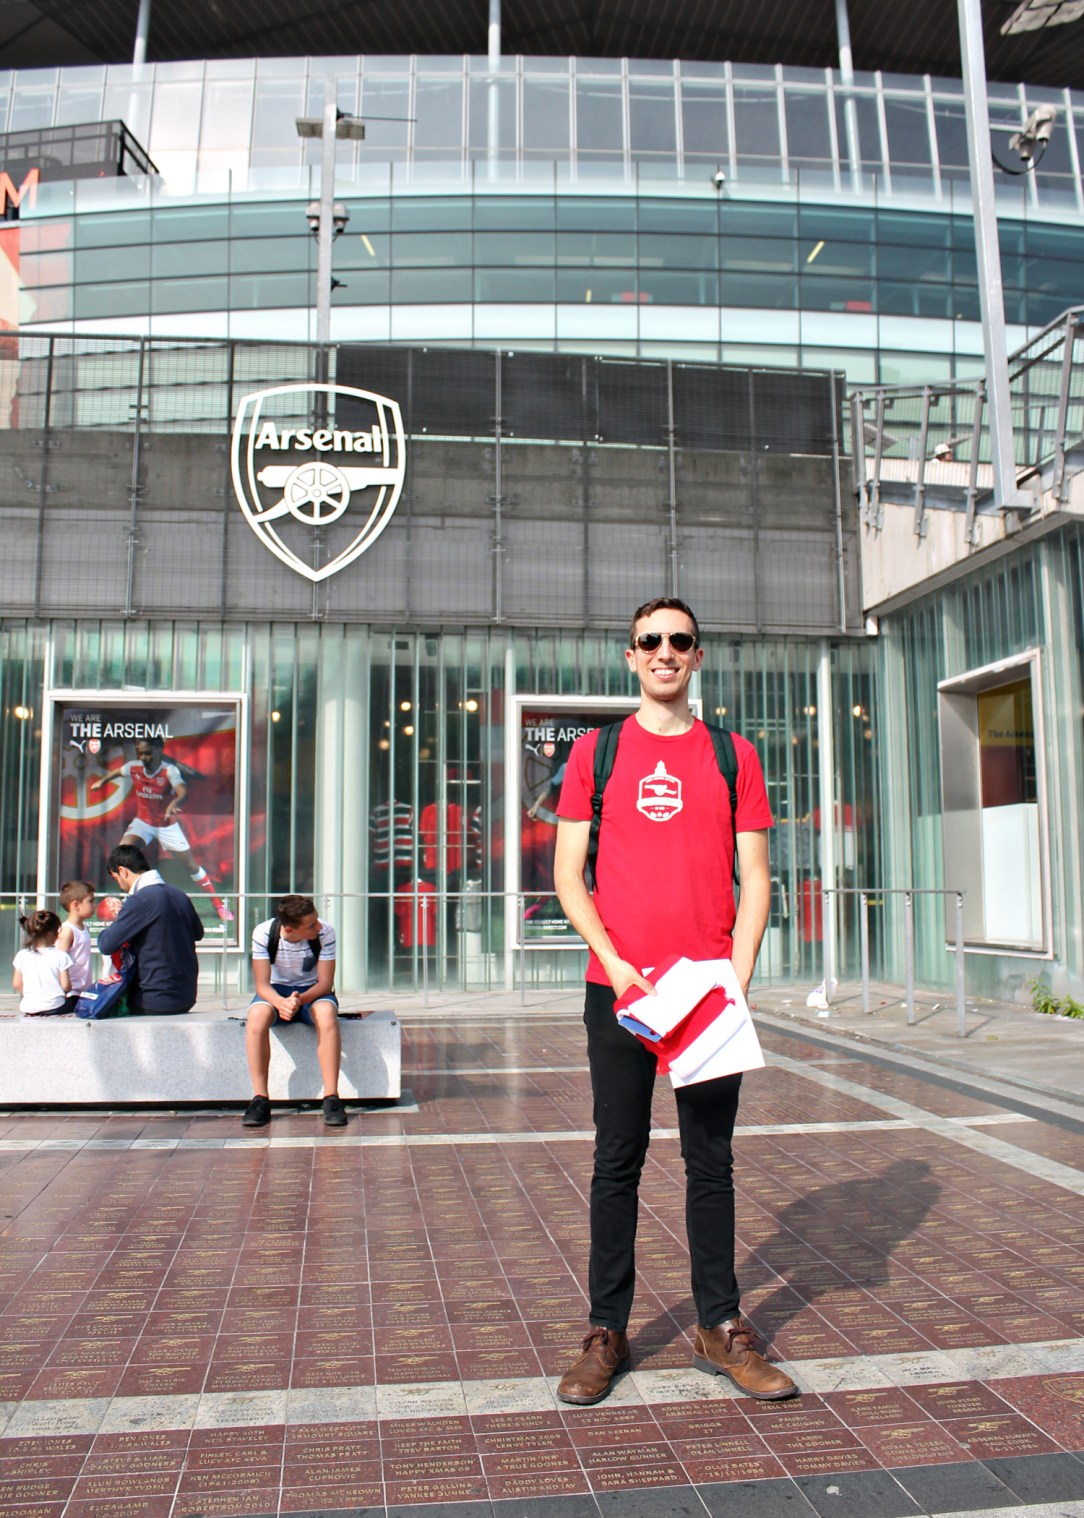 Visiting Emirates Stadium